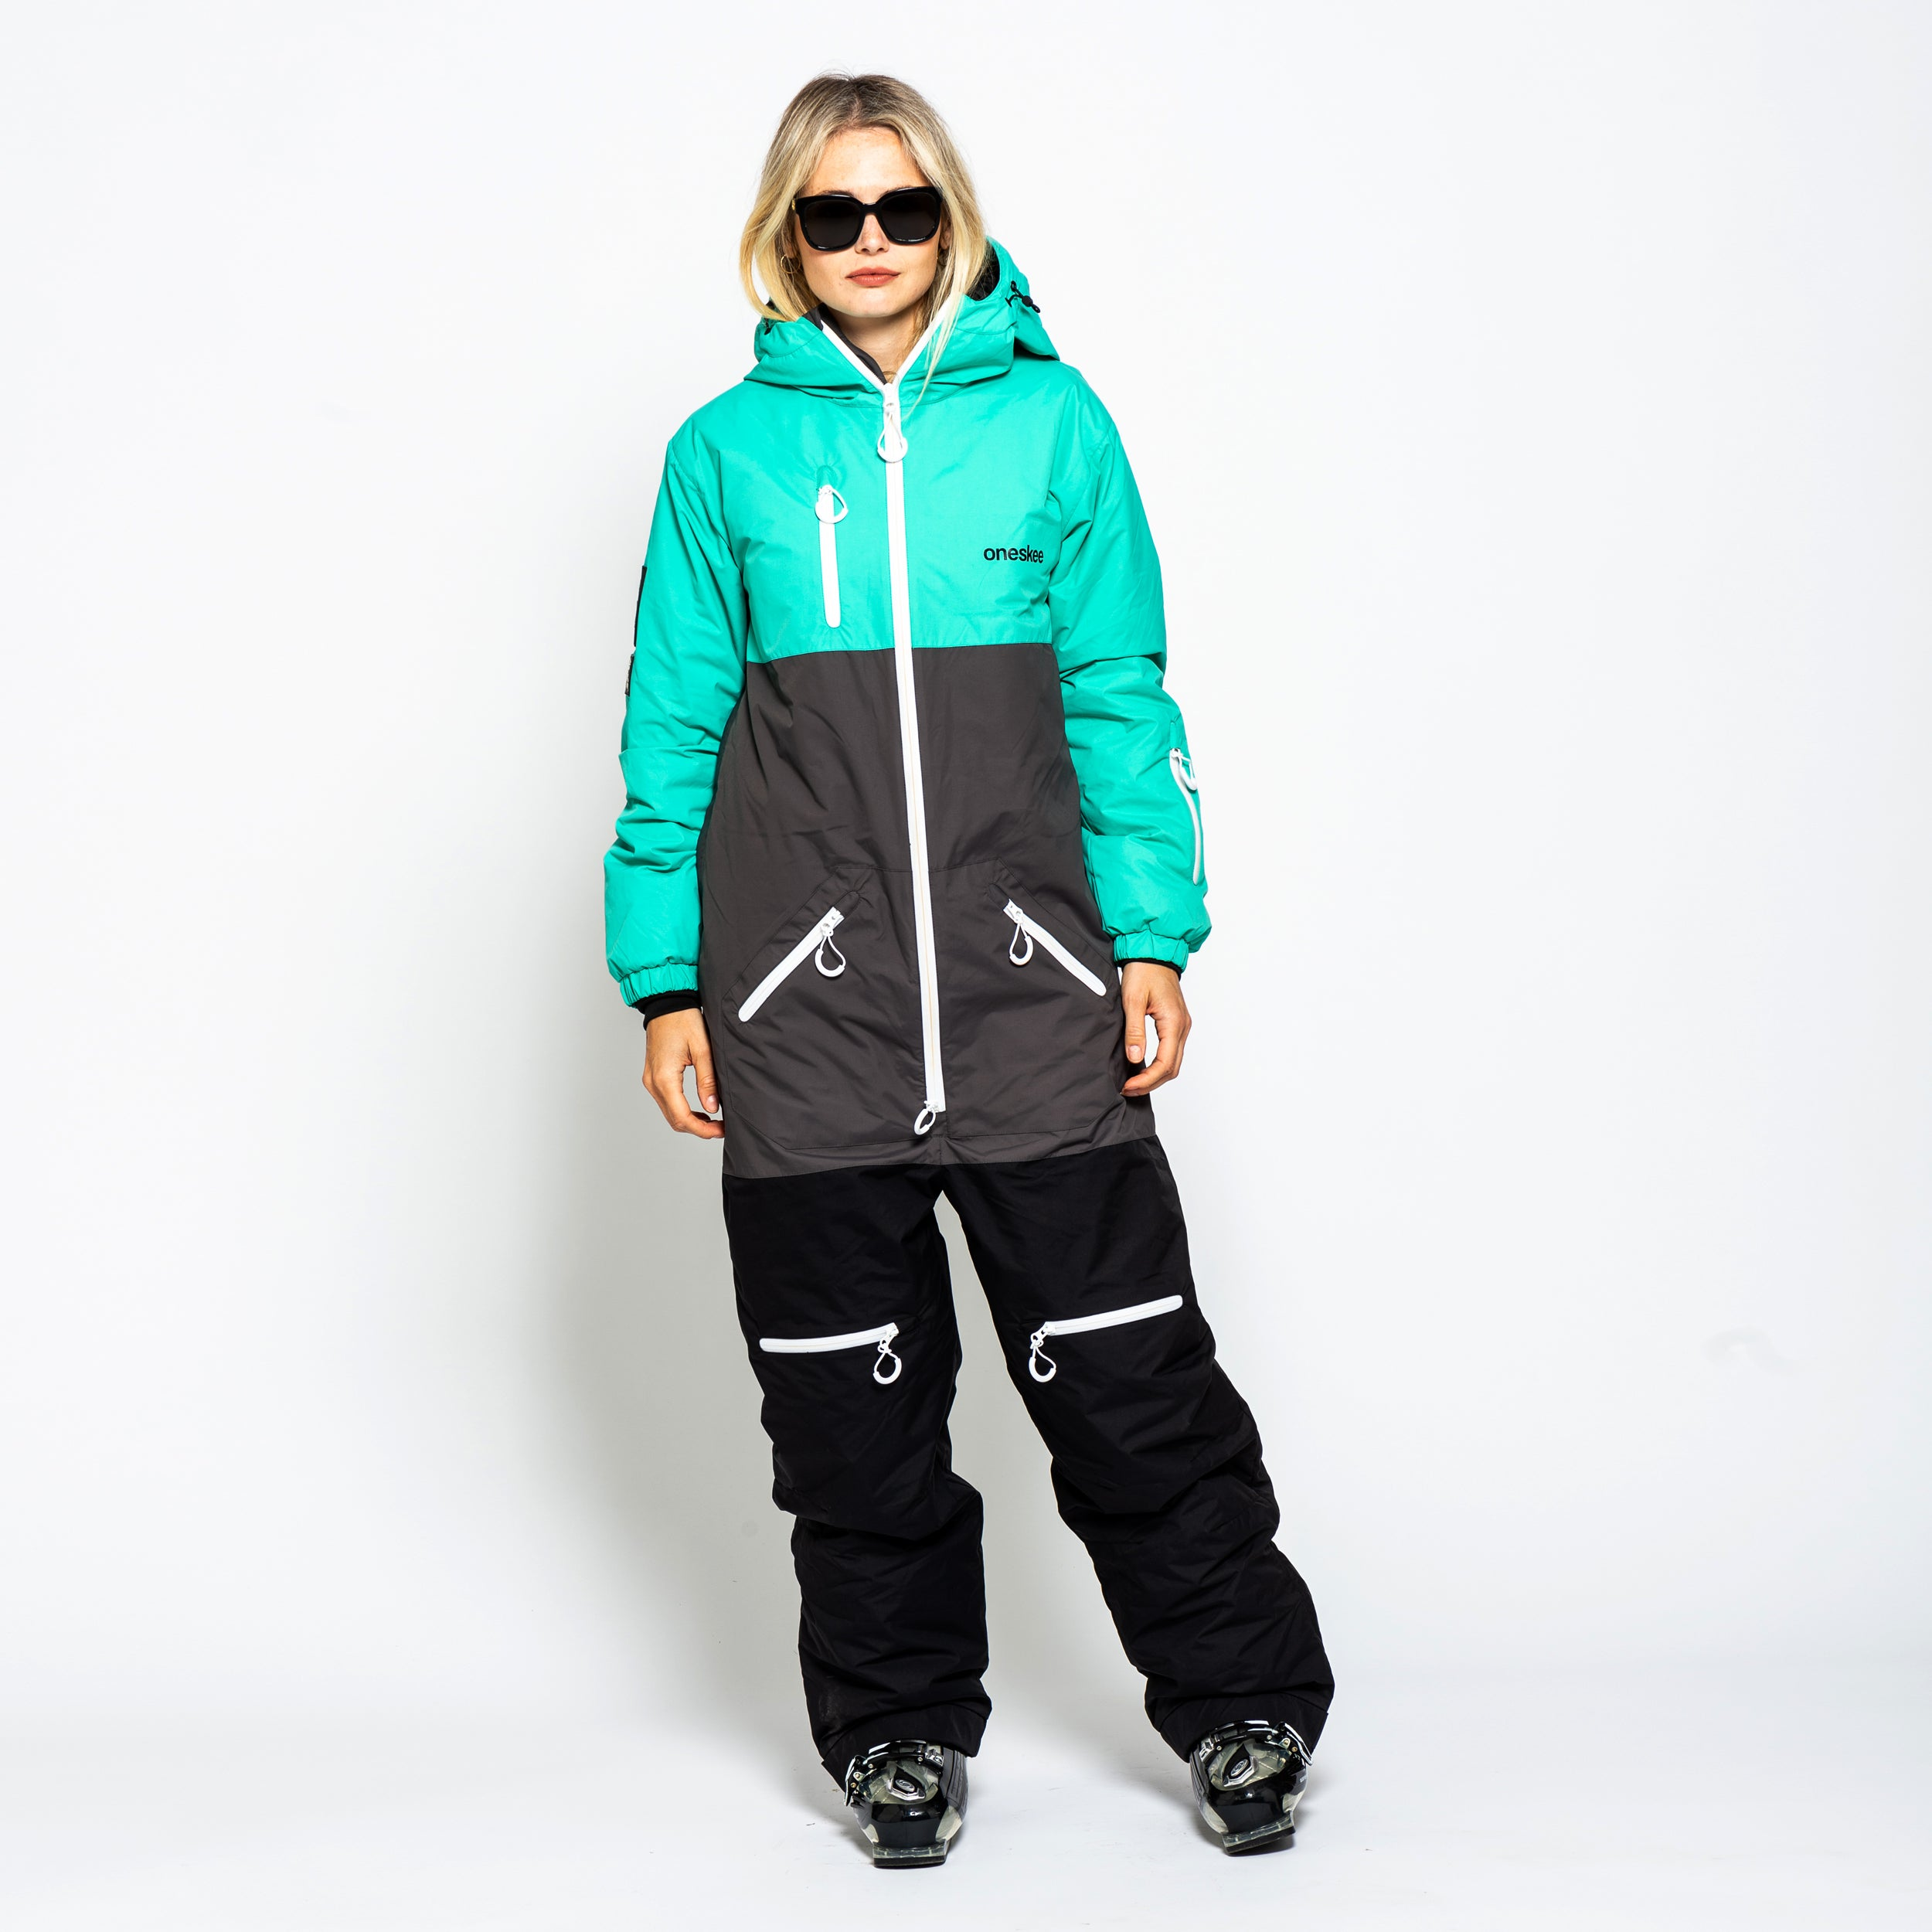 Women's Original Pro Suit - Mint/Black image 2